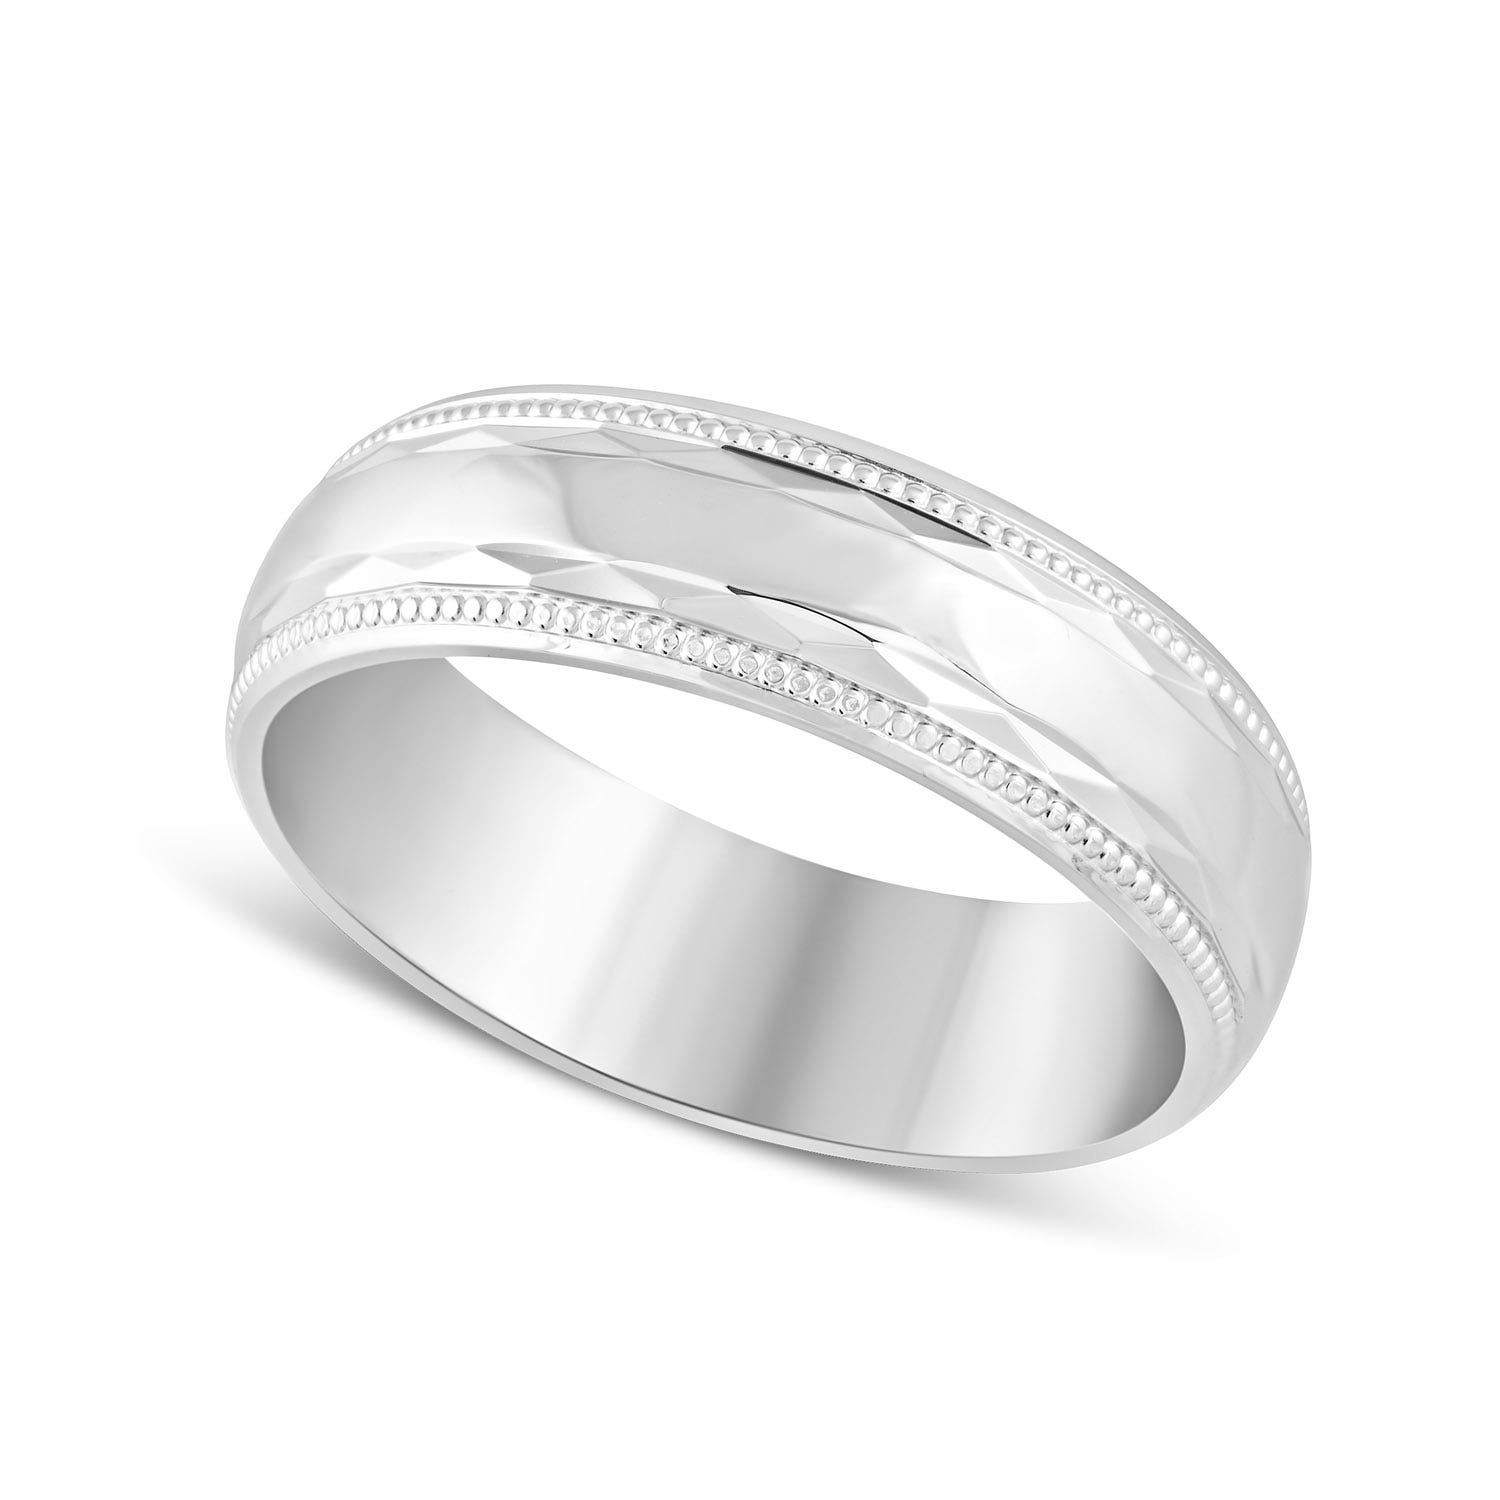 9ct White Gold Polished and diamond-cut with beaded edge 6mm Gents Wedding ring